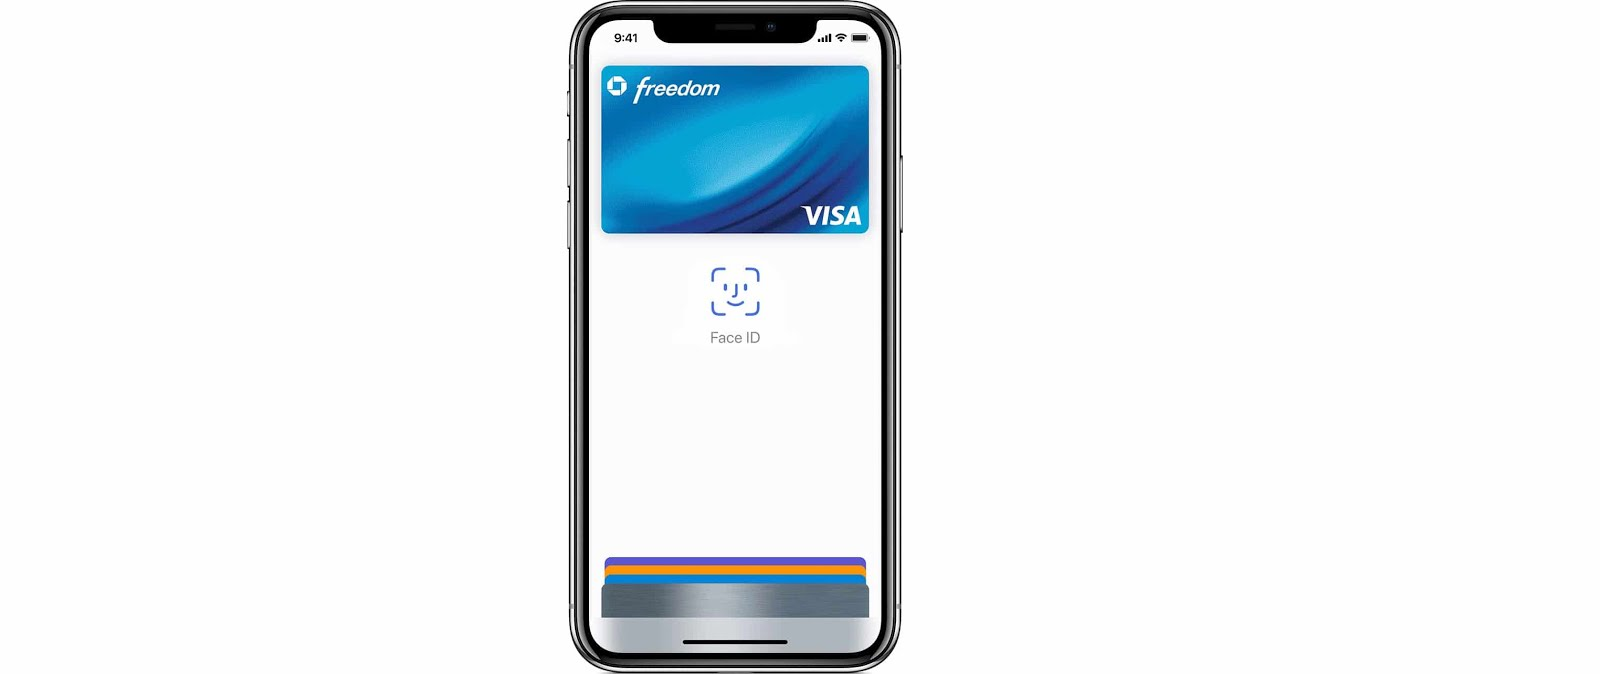 Now the Dubai residents can pay fines using Apple Pay in police service centers or at smart police stations as noted by Director General of the Department of Artificial Intelligence at Dubai Police, Brigadier Khalid Nasser Al Razzouqi.